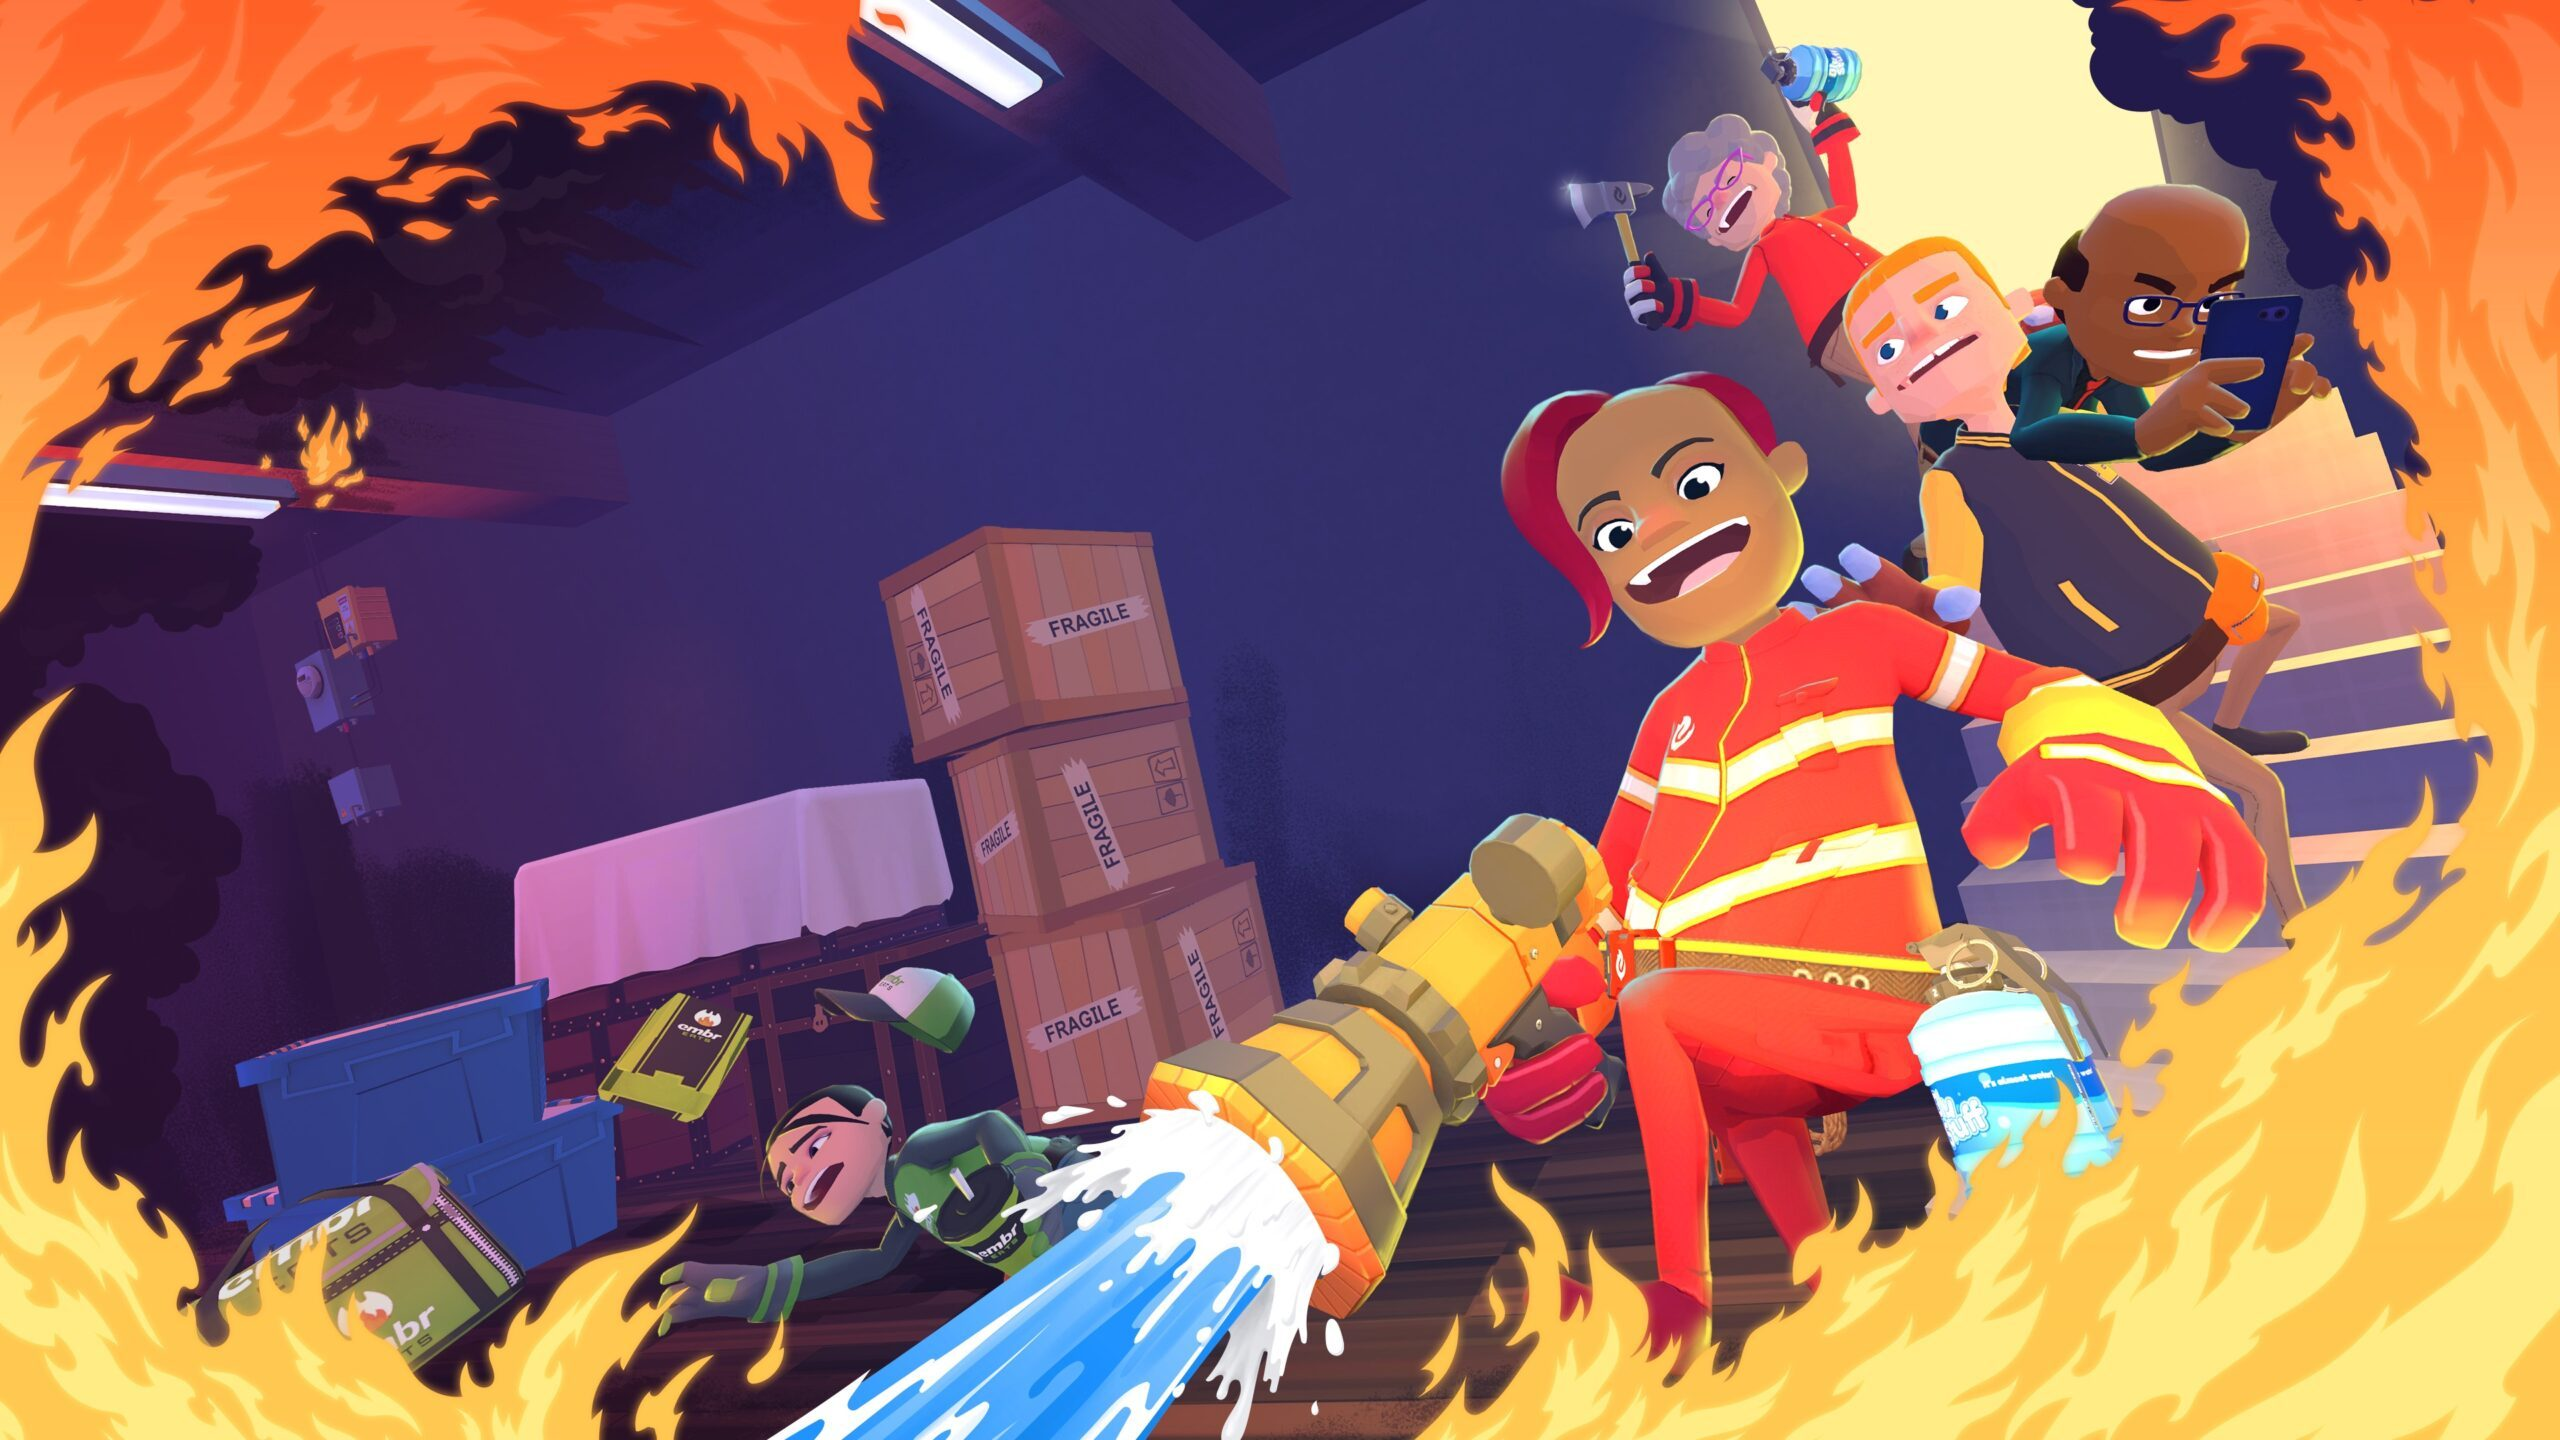 play-firefighters-for-employ-in-frantic-multiplayer-embr,-out-tomorrow